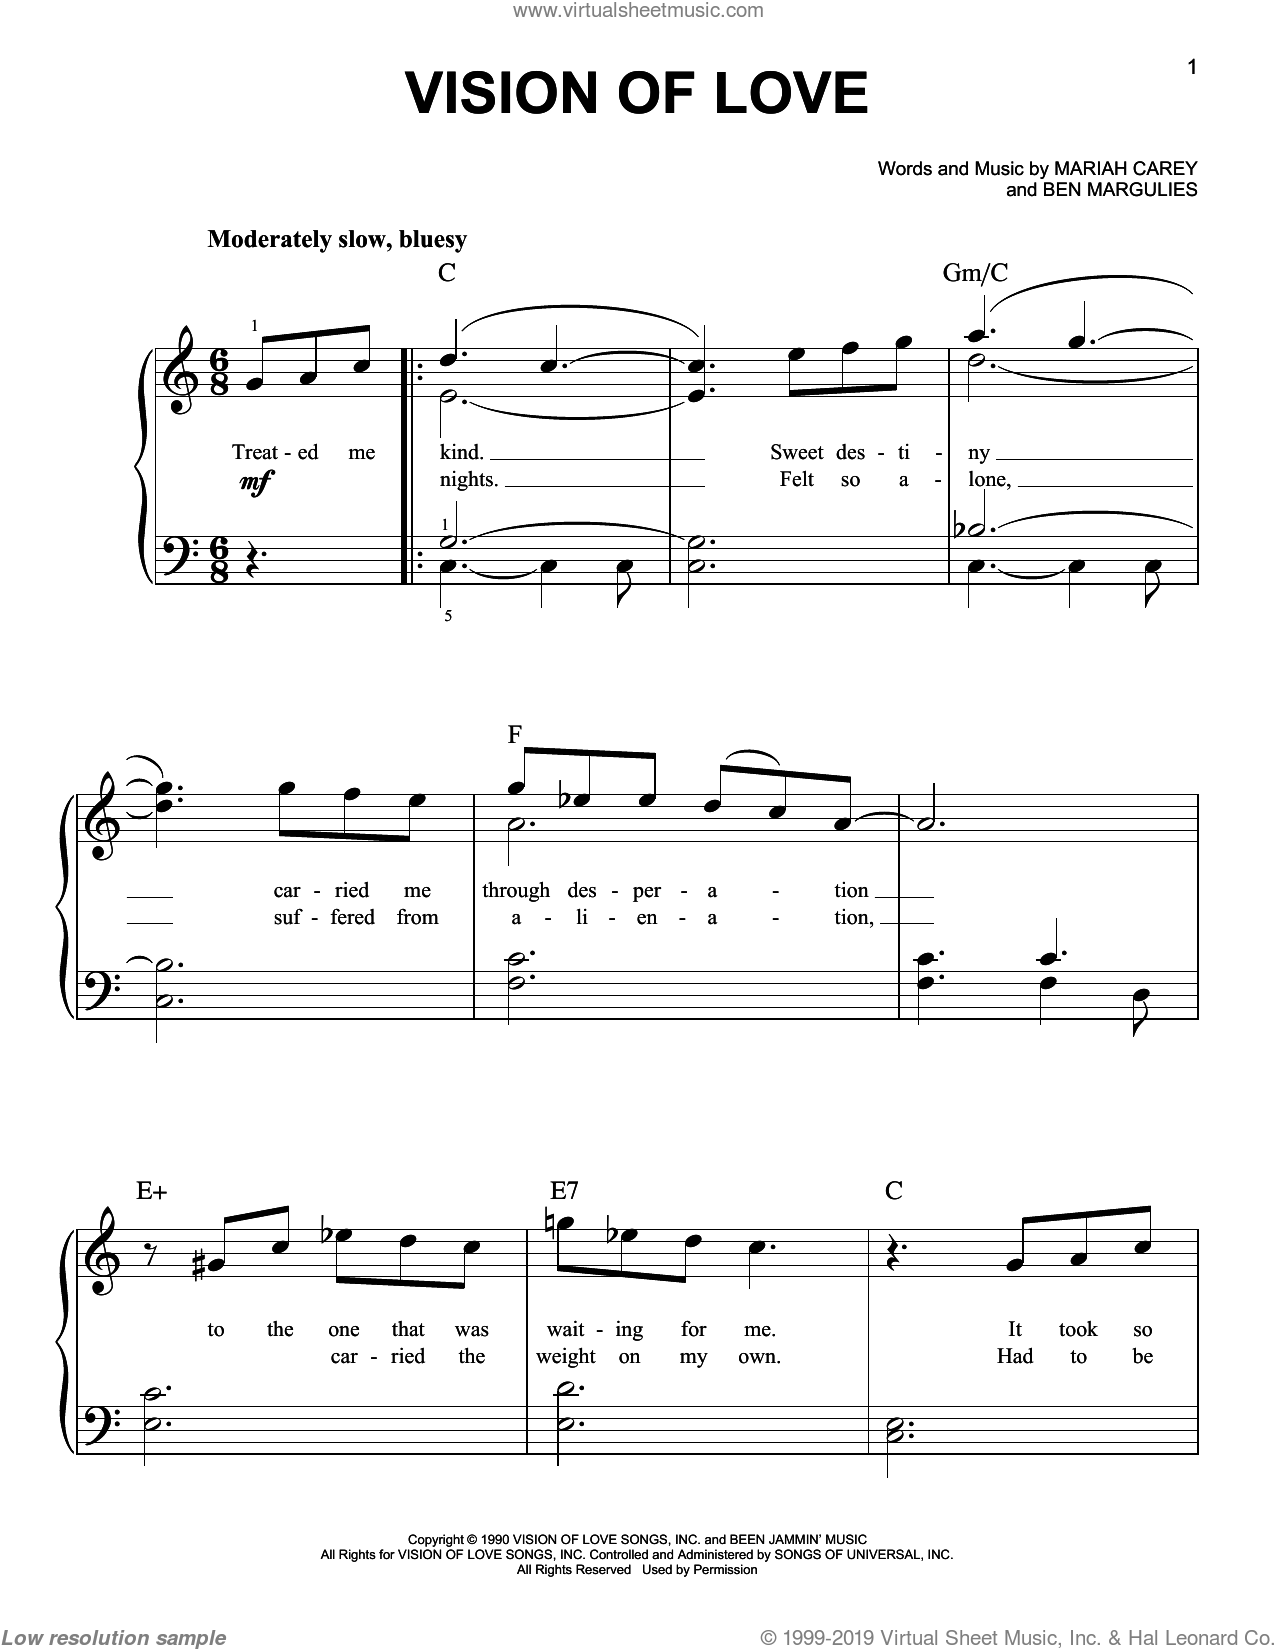 Vision Of Love sheet music for piano solo by Mariah Carey and Ben Margulies, easy skill level